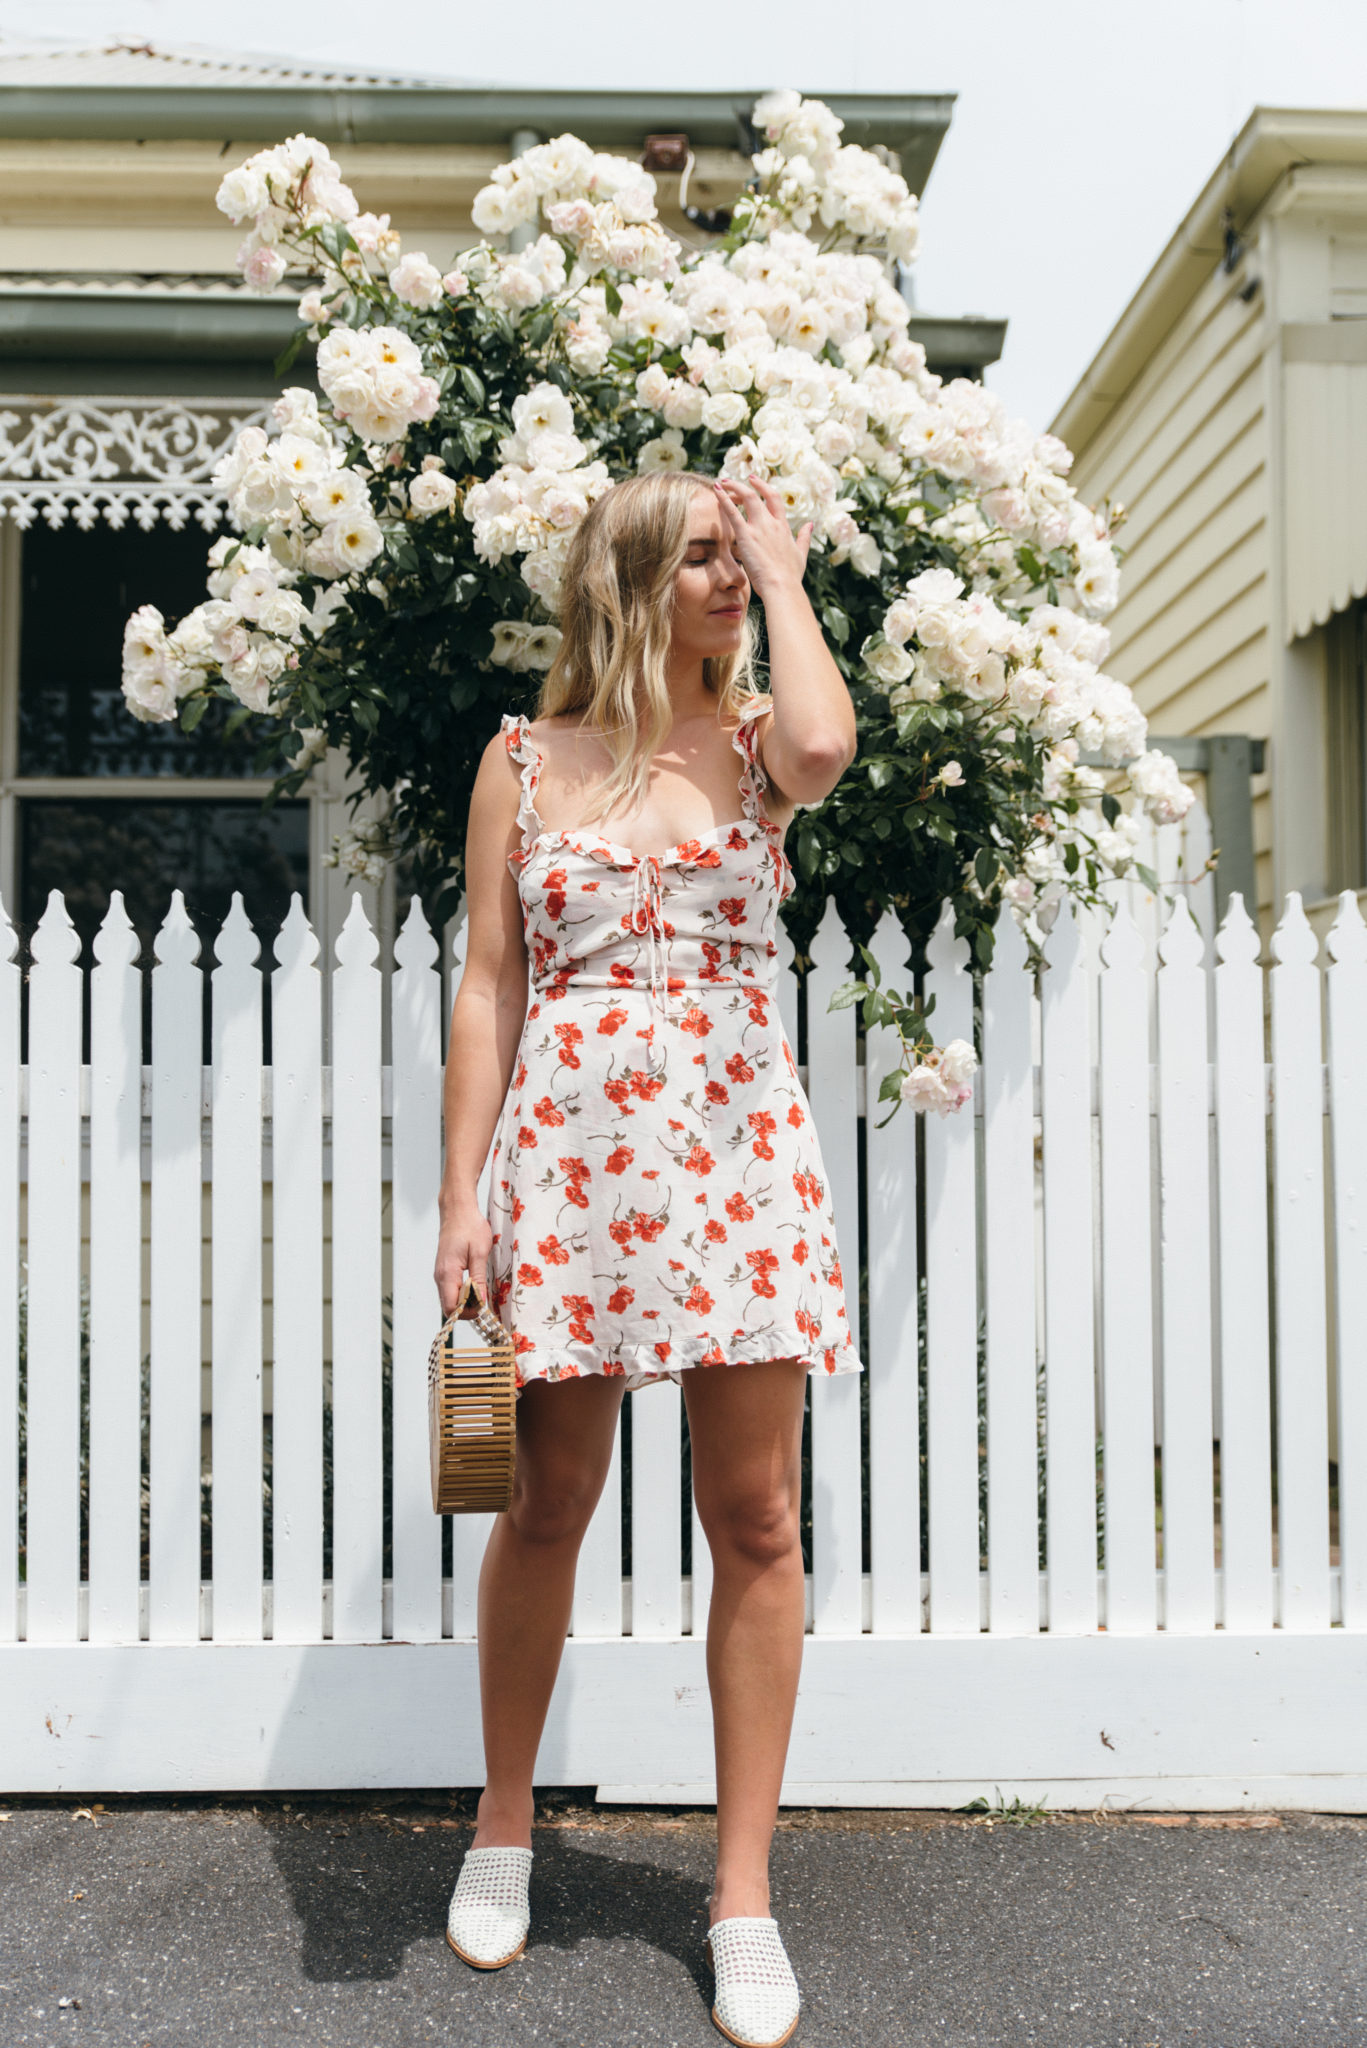 Reformation Floral Dress, RUBY Earrings, Cult Gaia Bag, Sol Sana Parker | StolenInspiration.com NZ Fashion Blog